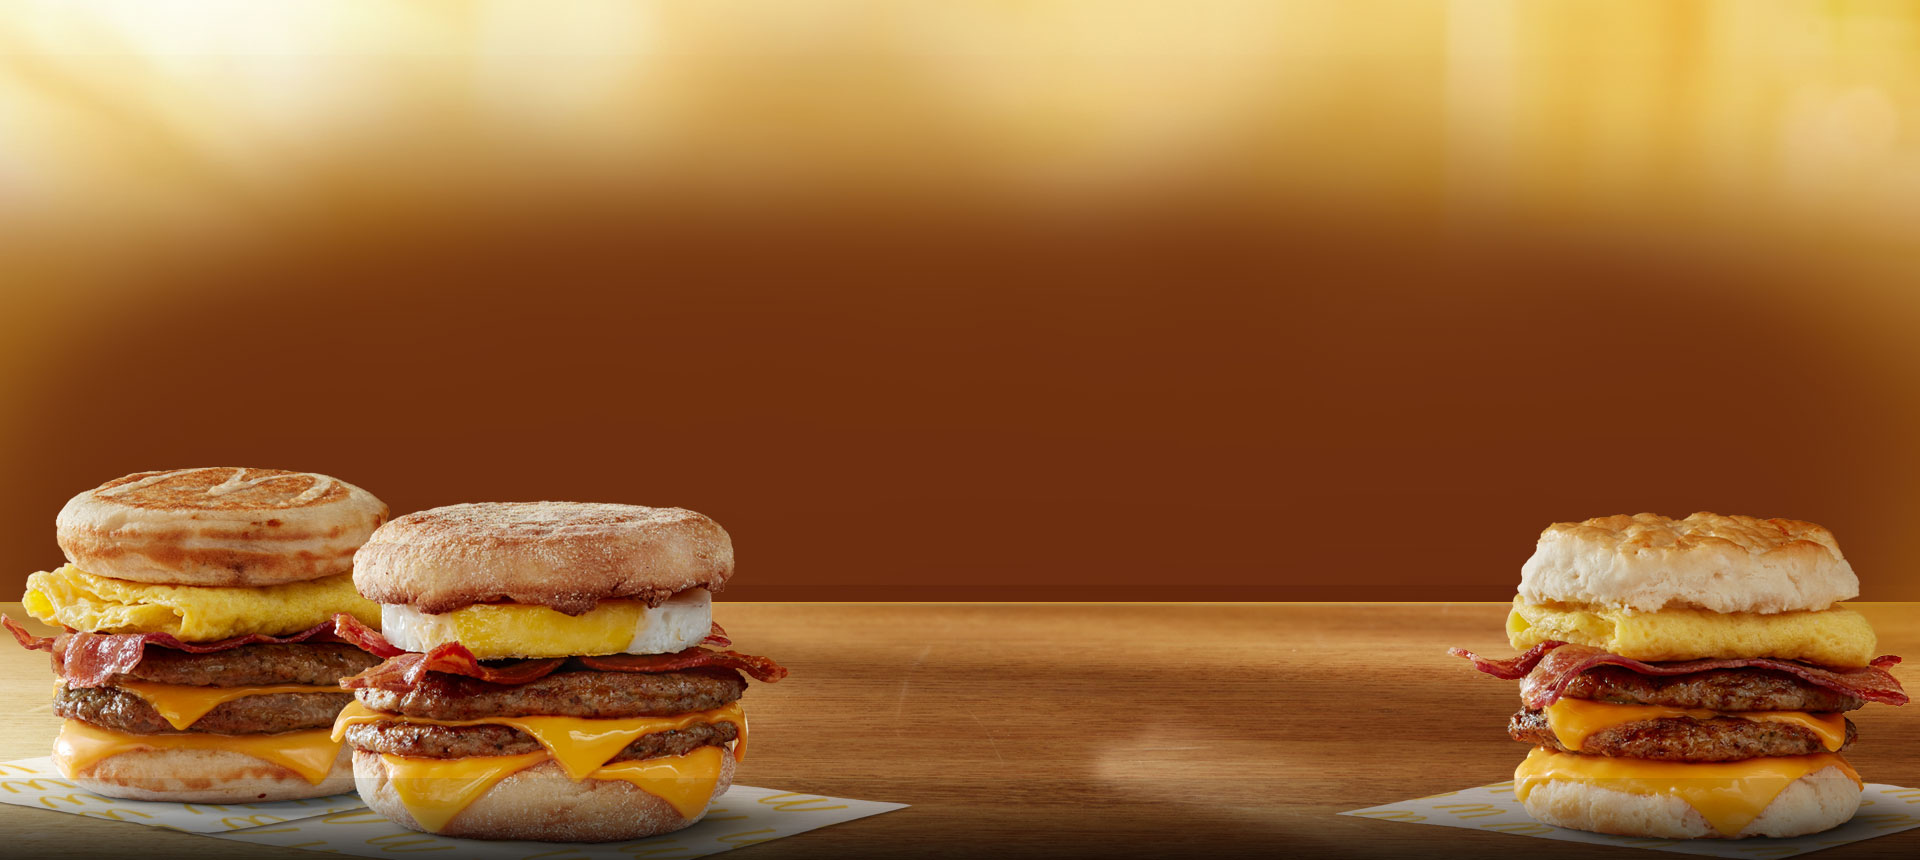 Picturesque A Limited Try Our New Triple Breakfast Stackslayers Fries Quality Layersof Breakfast Faves For A Limited Try Our New Triple Breakfast Stacks Layers nice food Mcdonalds 2 For 5